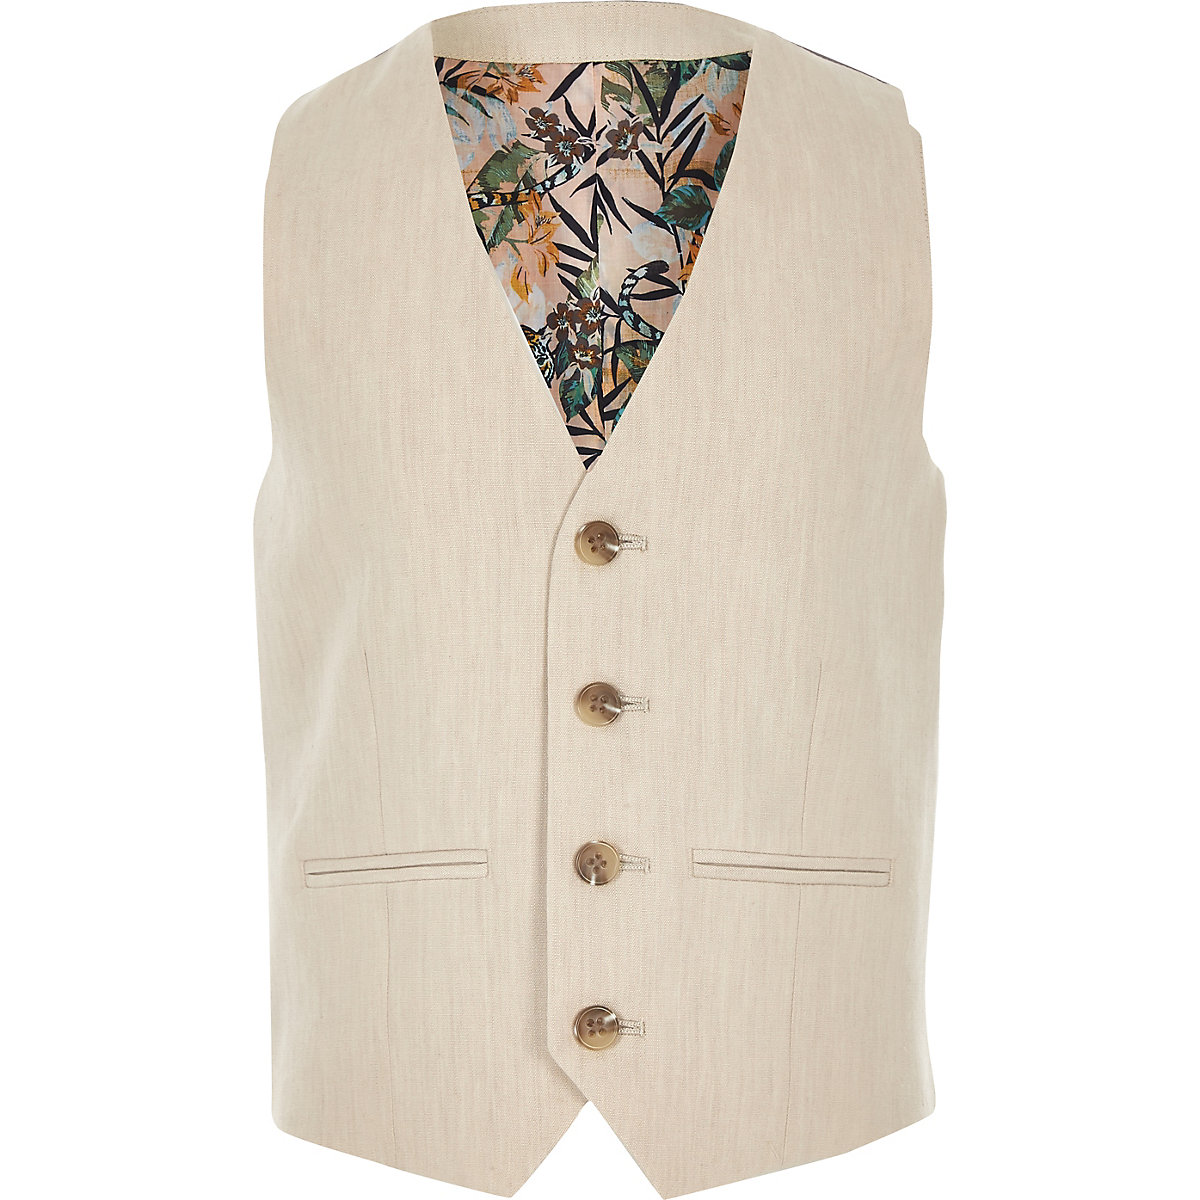 Boys cream linen suit vest